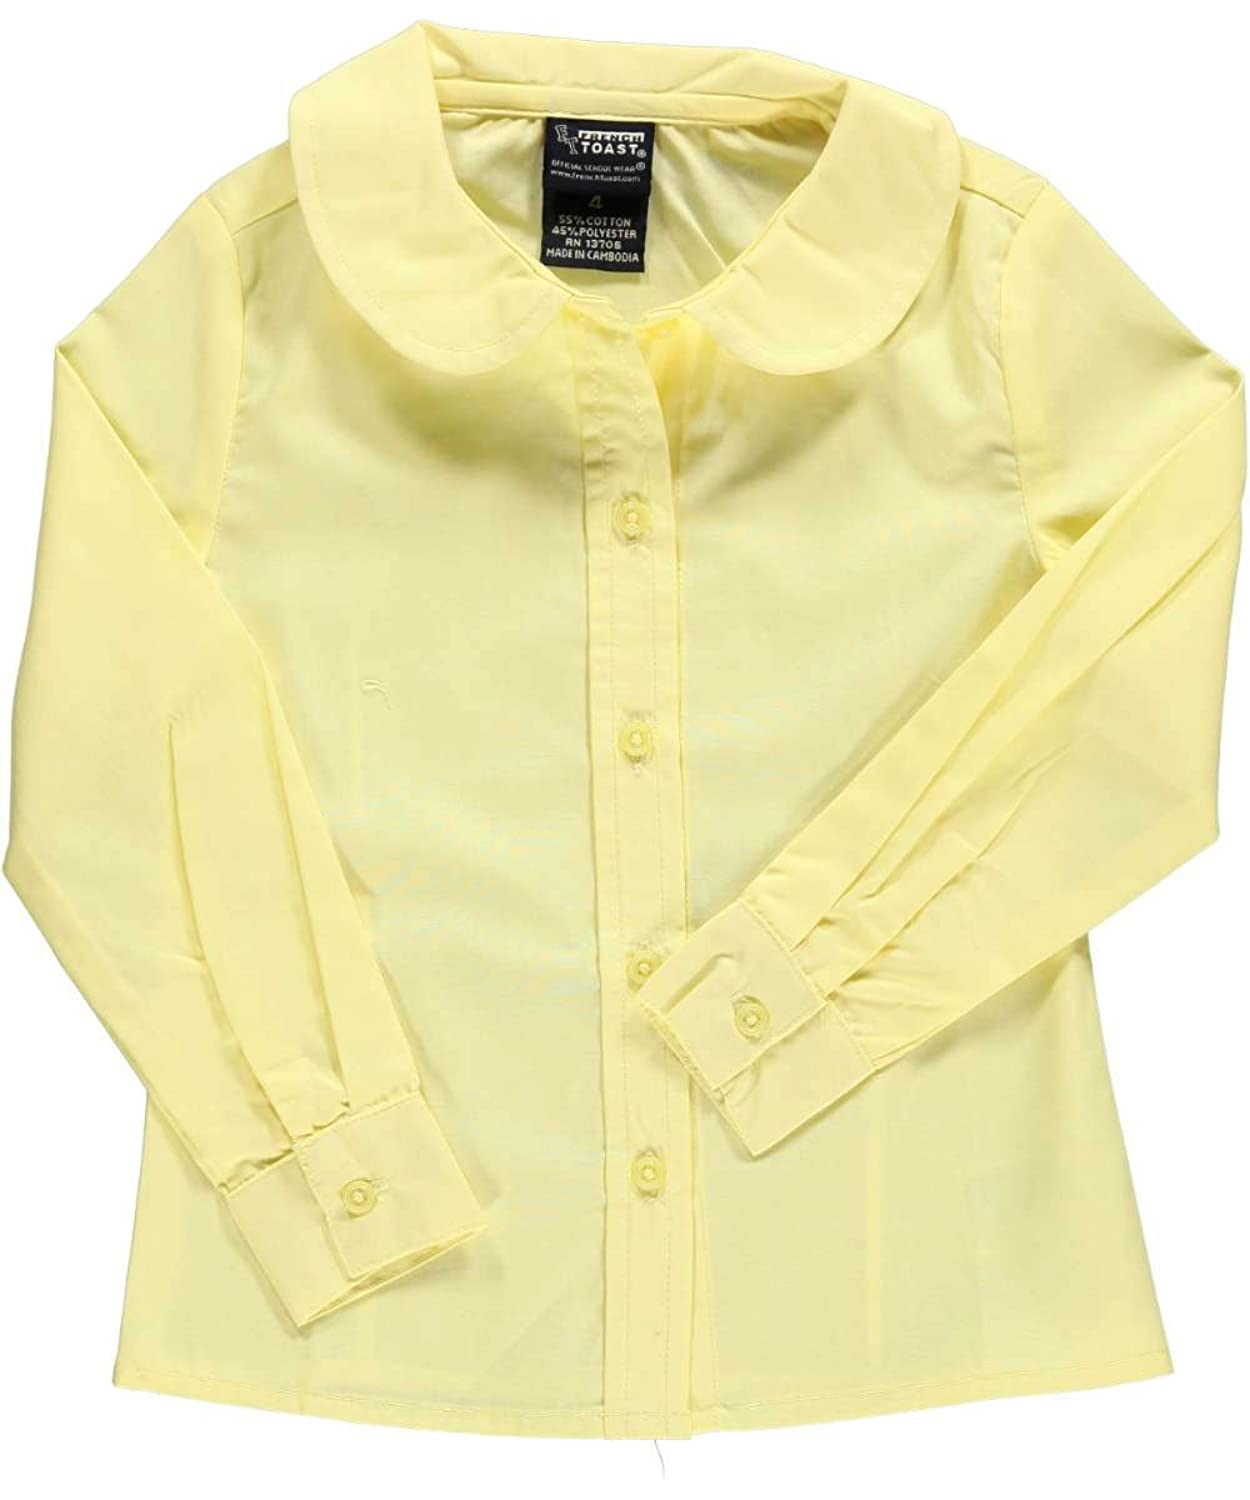 cc161f435f9 French Toast Girls Short Sleeve Peter Pan Collar Blouse